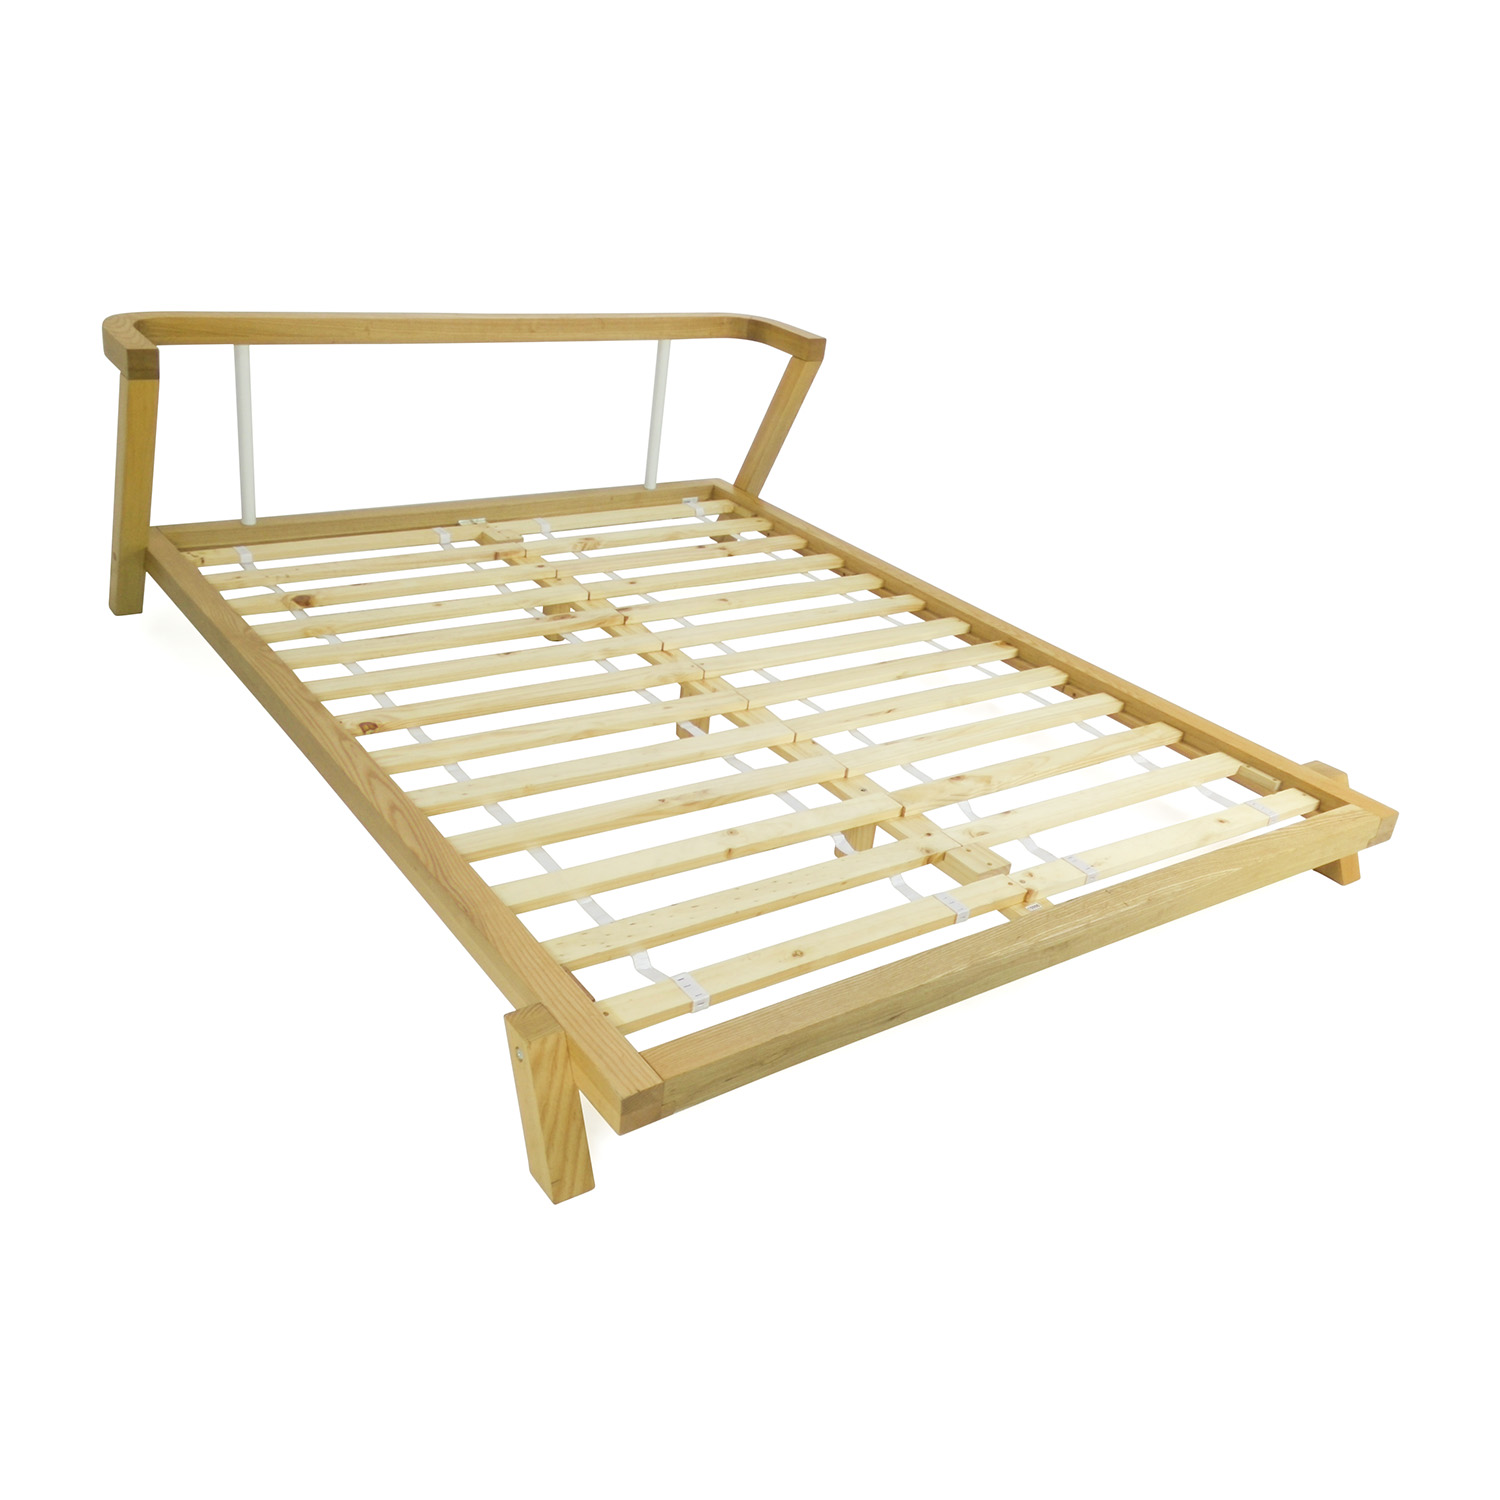 CB2 CB2 Siesta Queen Size Bed second hand